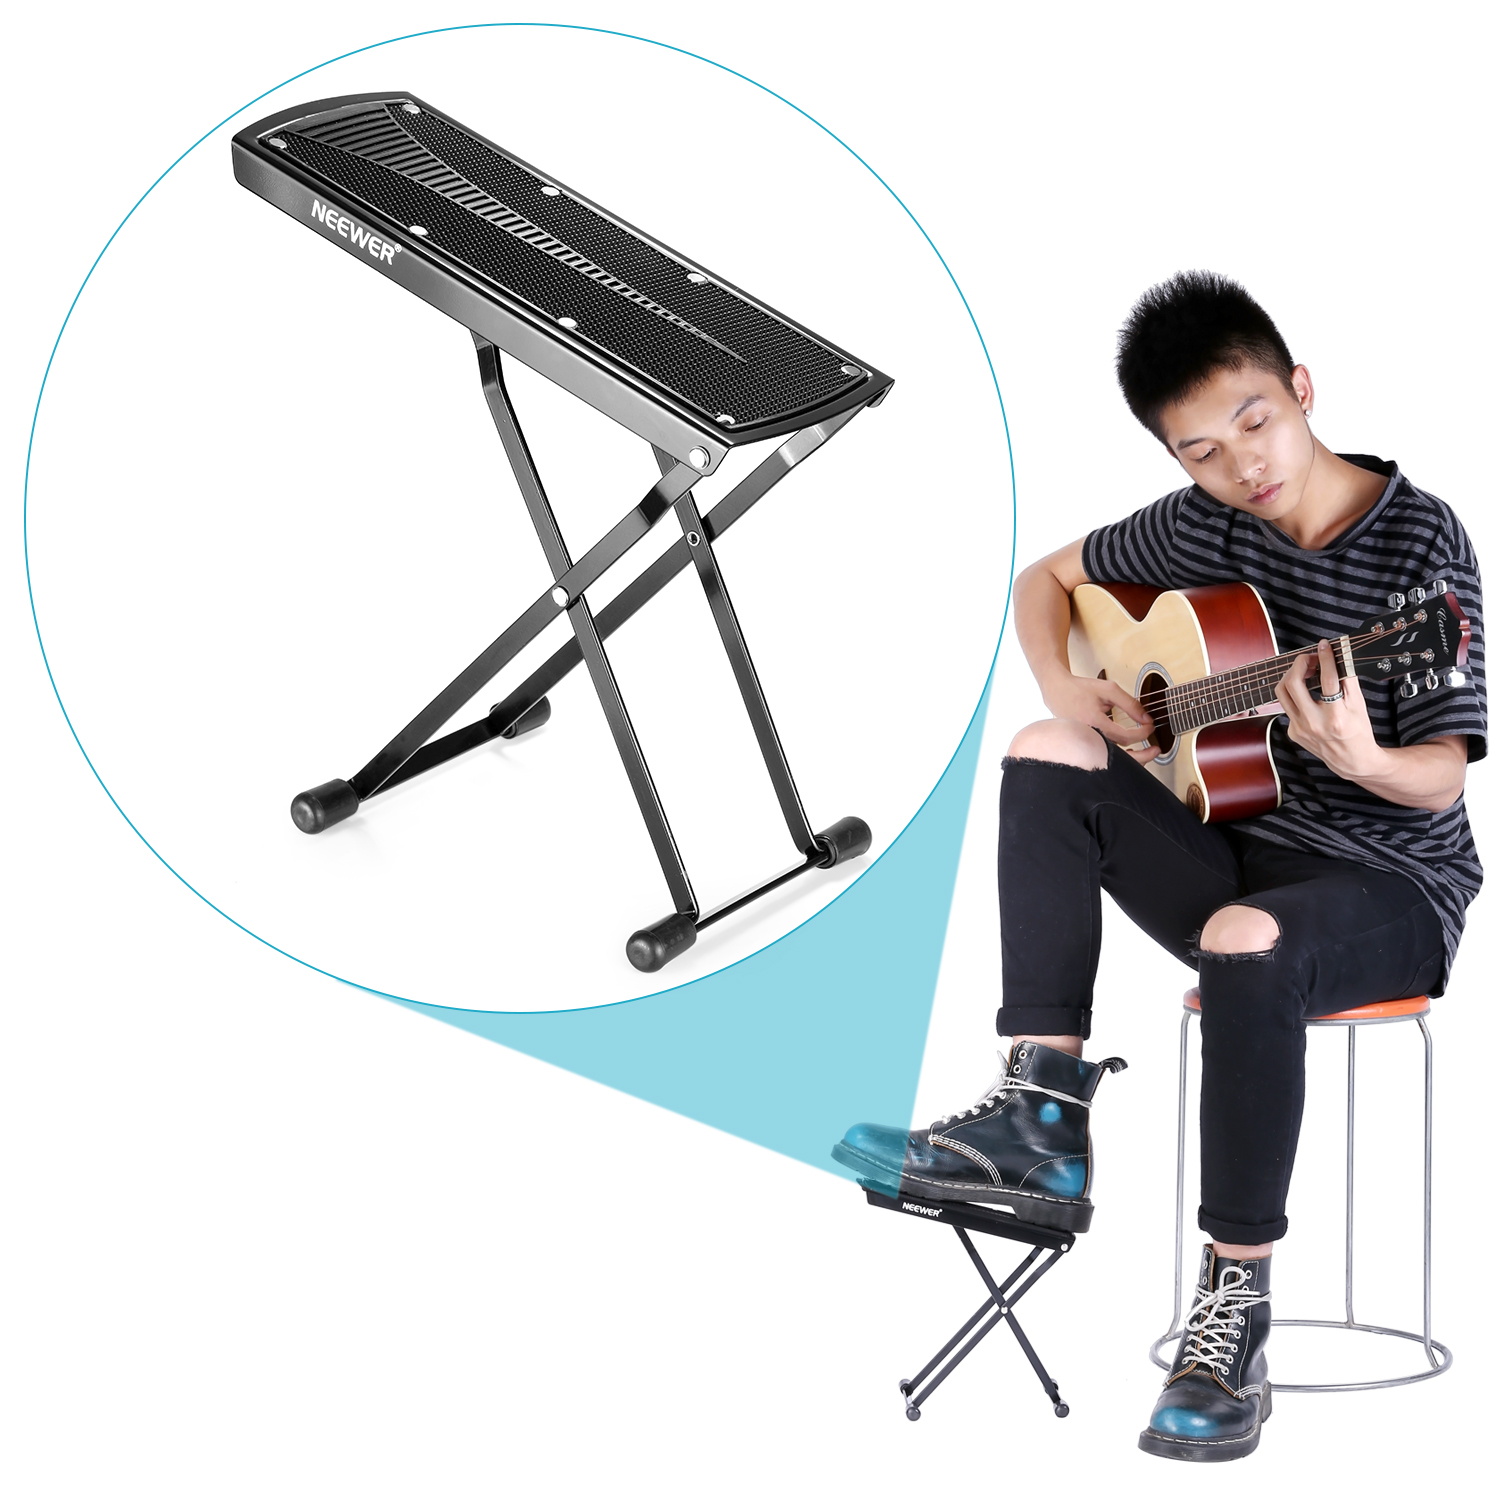 neewer extra sturdy guitar foot rest provides six adjusted height positions ebay. Black Bedroom Furniture Sets. Home Design Ideas